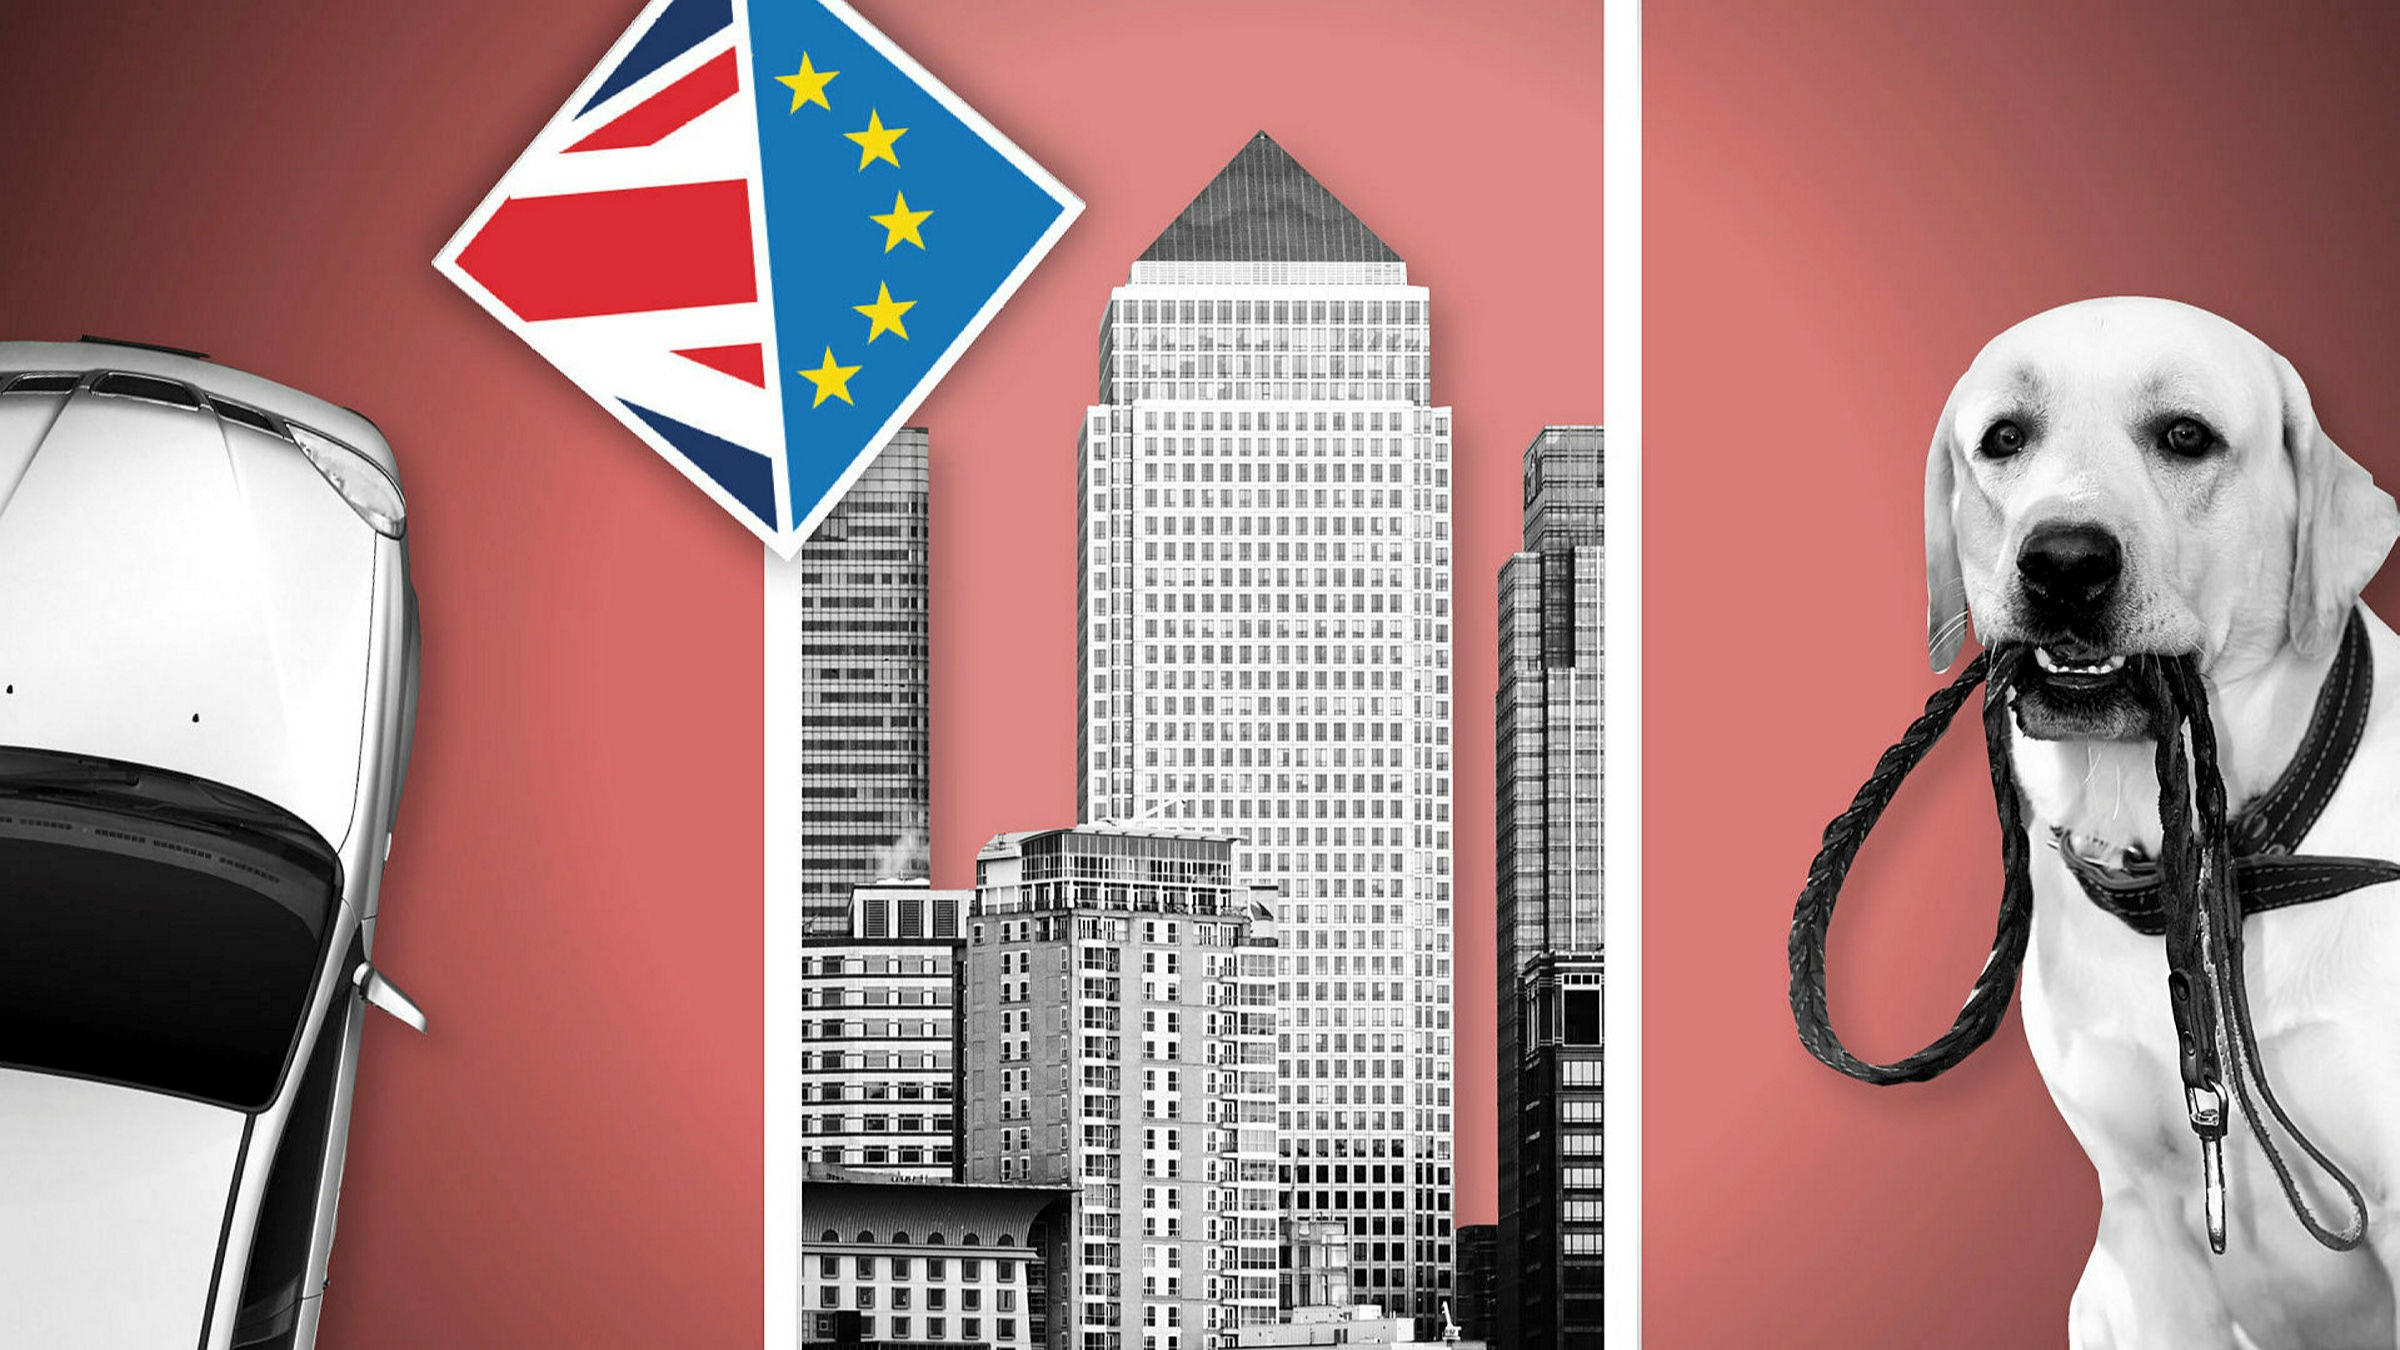 ft.com - Peter Foster in London and Jim Brunsden in Brussels - EU keeps UK guessing on post-Brexit rights